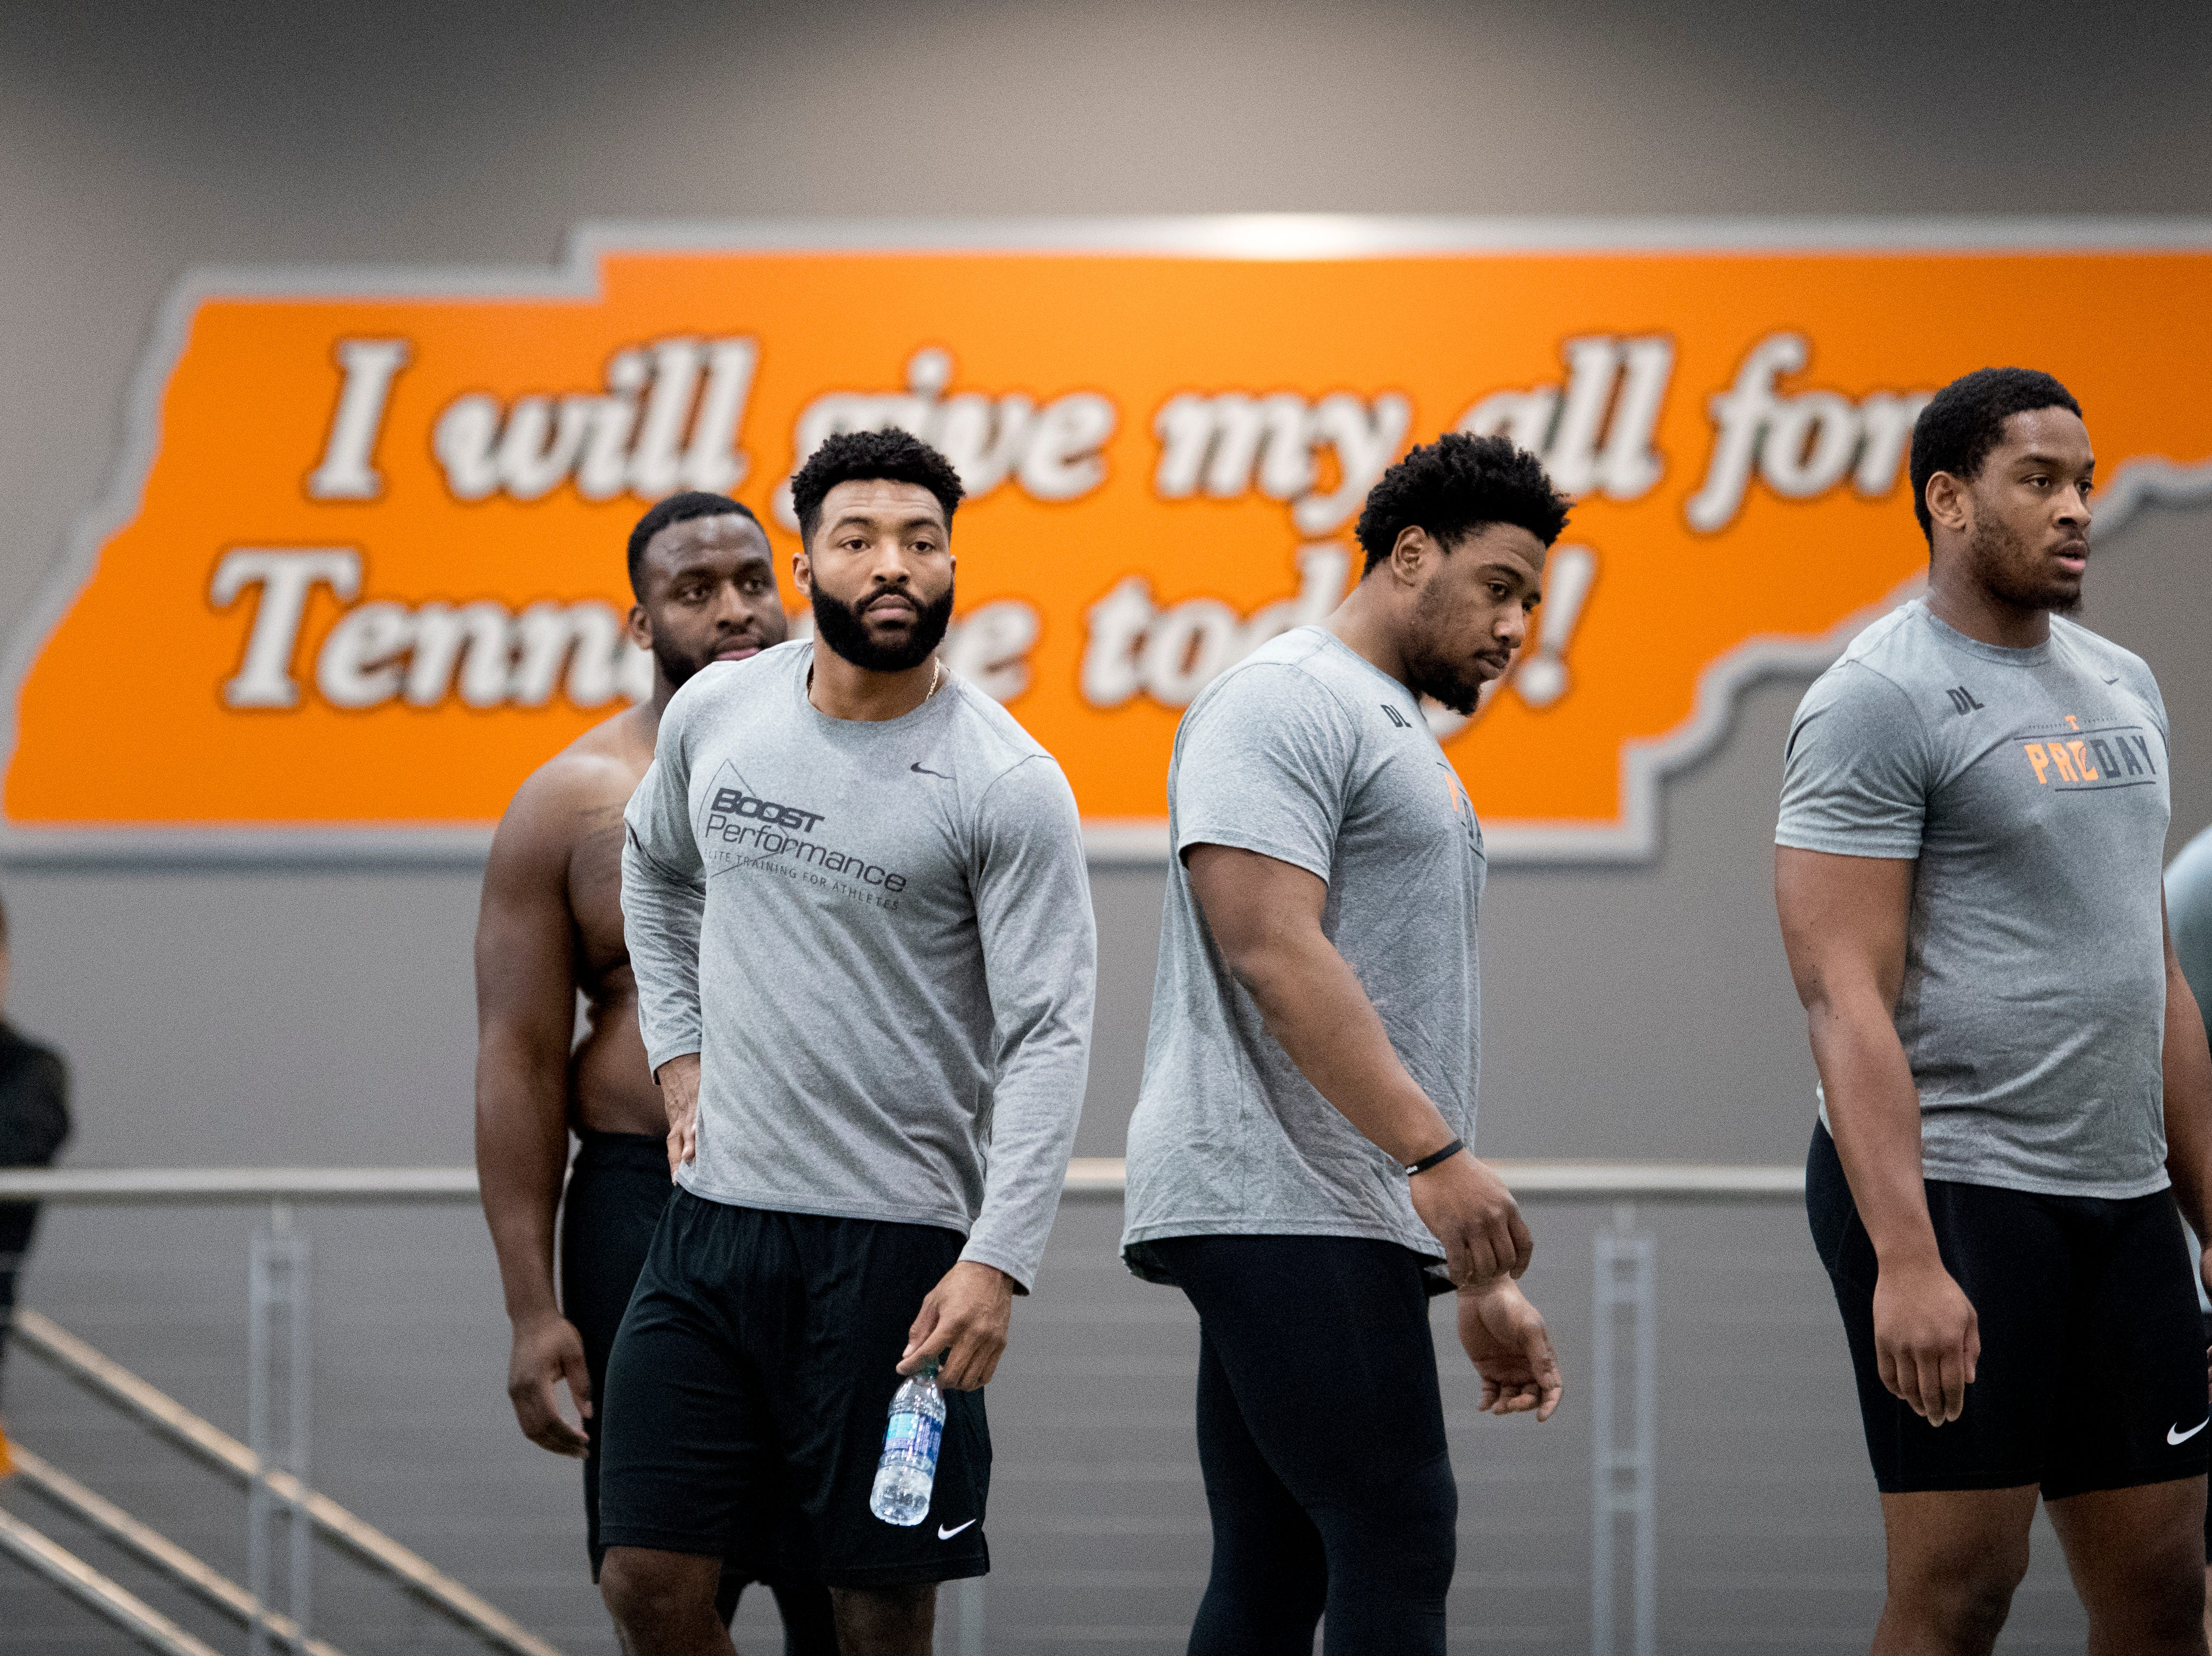 Tennessee prospects at Tennessee Pro Day at Anderson Training Facility in Knoxville, Tennessee on Thursday, March 14, 2019. Draft prospects from Tennessee and other schools worked out before NFL scouts.